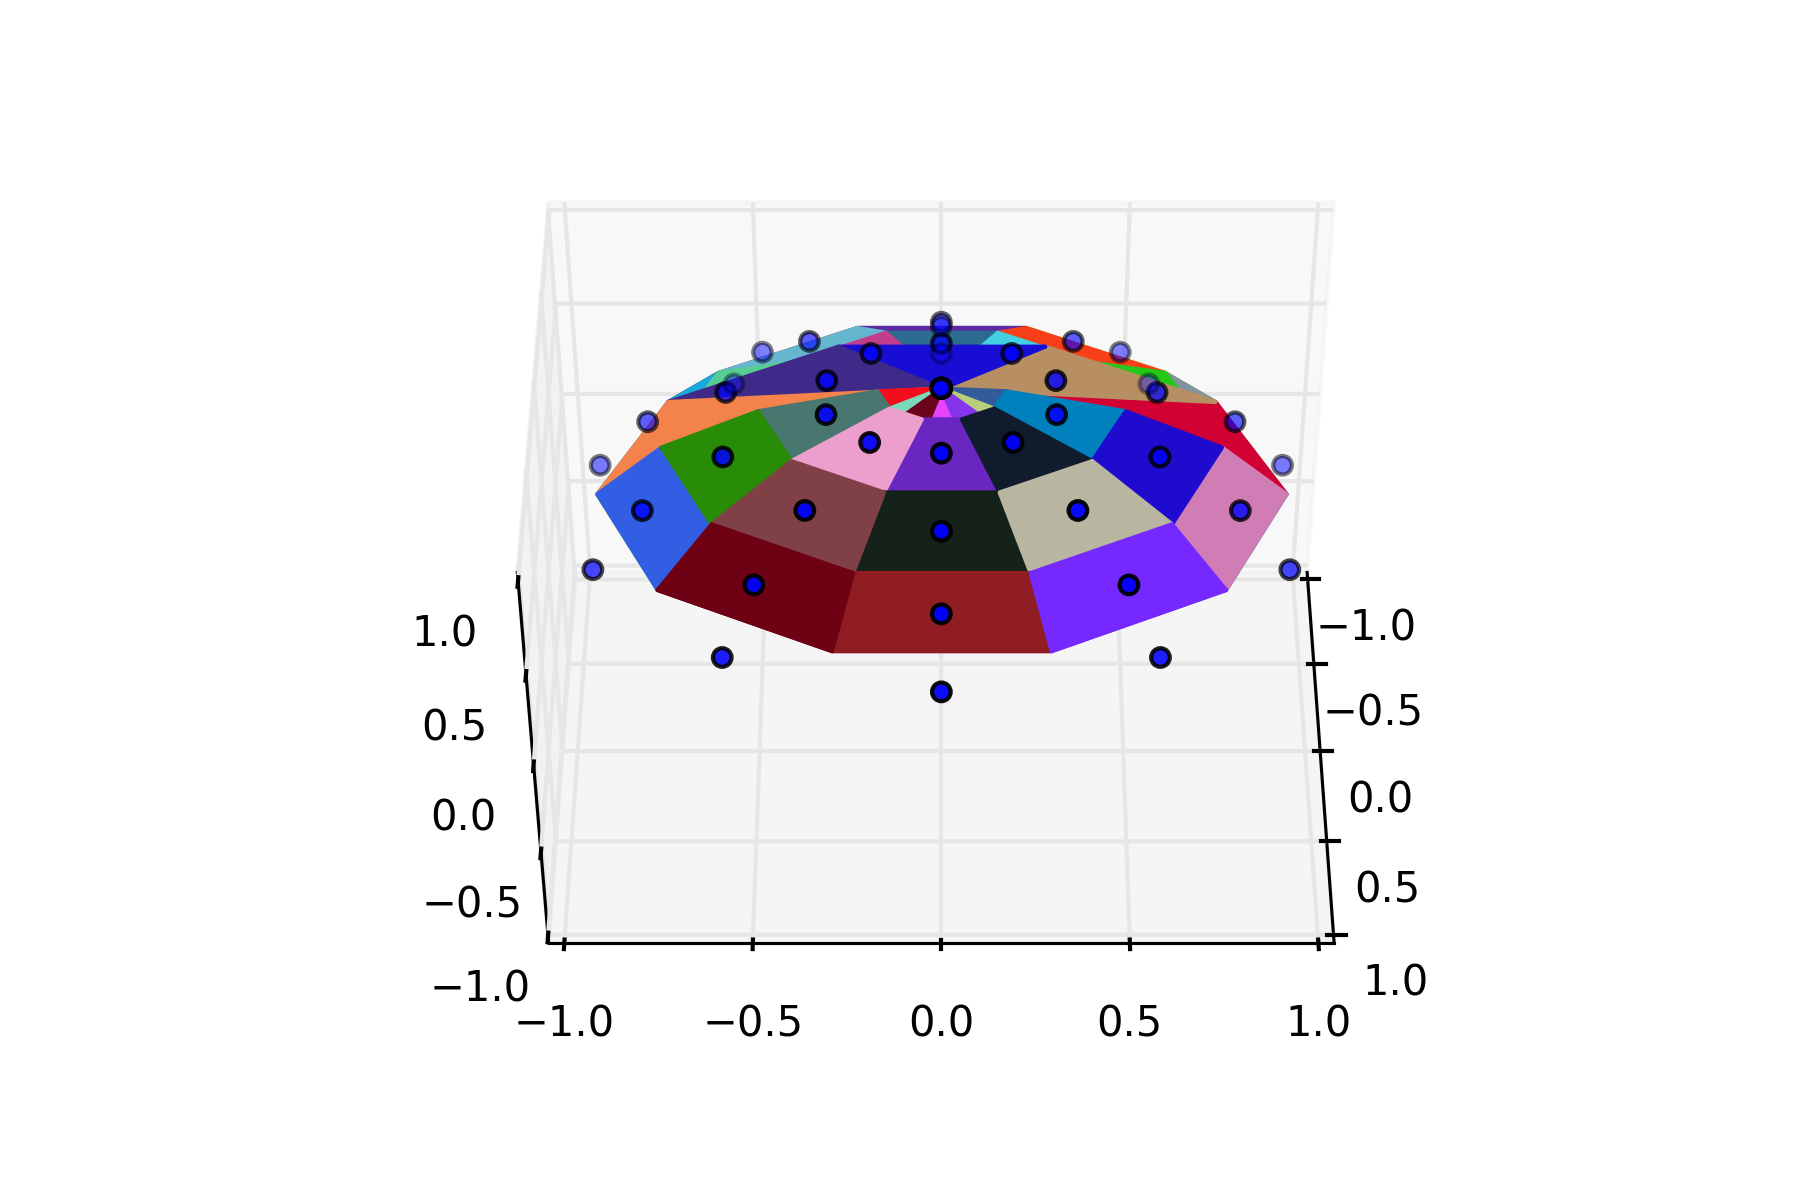 Question: Spherical Voronoi Diagram for Generators in a